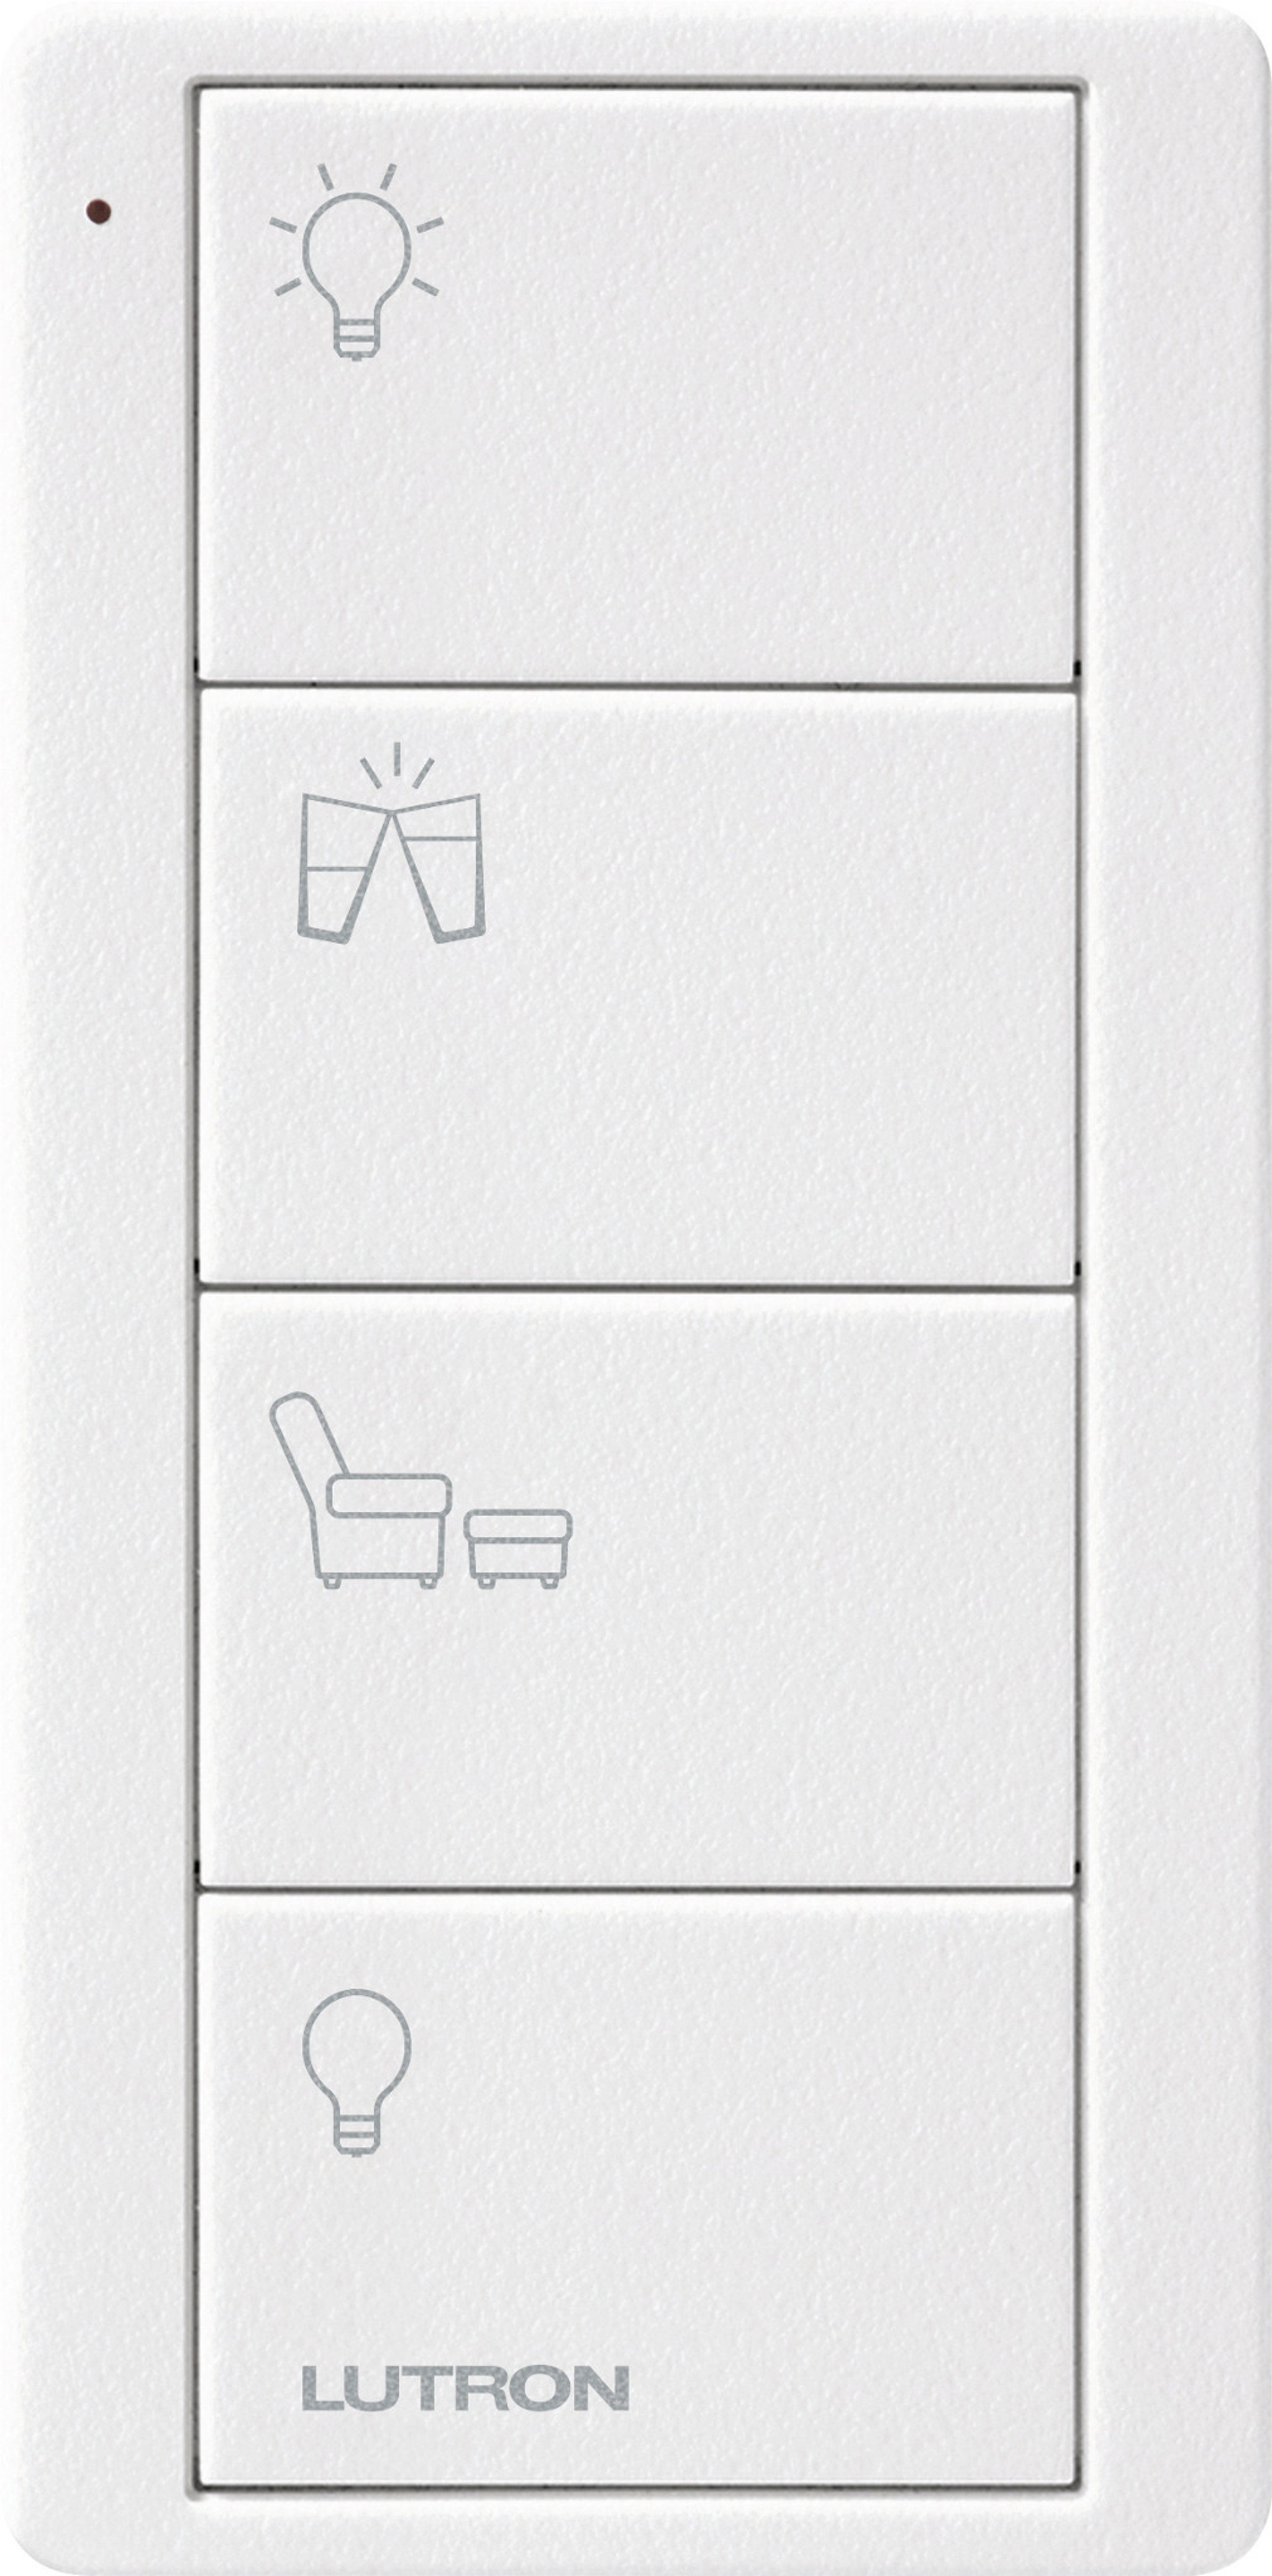 Lutron Pico RF 4 Button Control (Artic White) (Any Room Model)